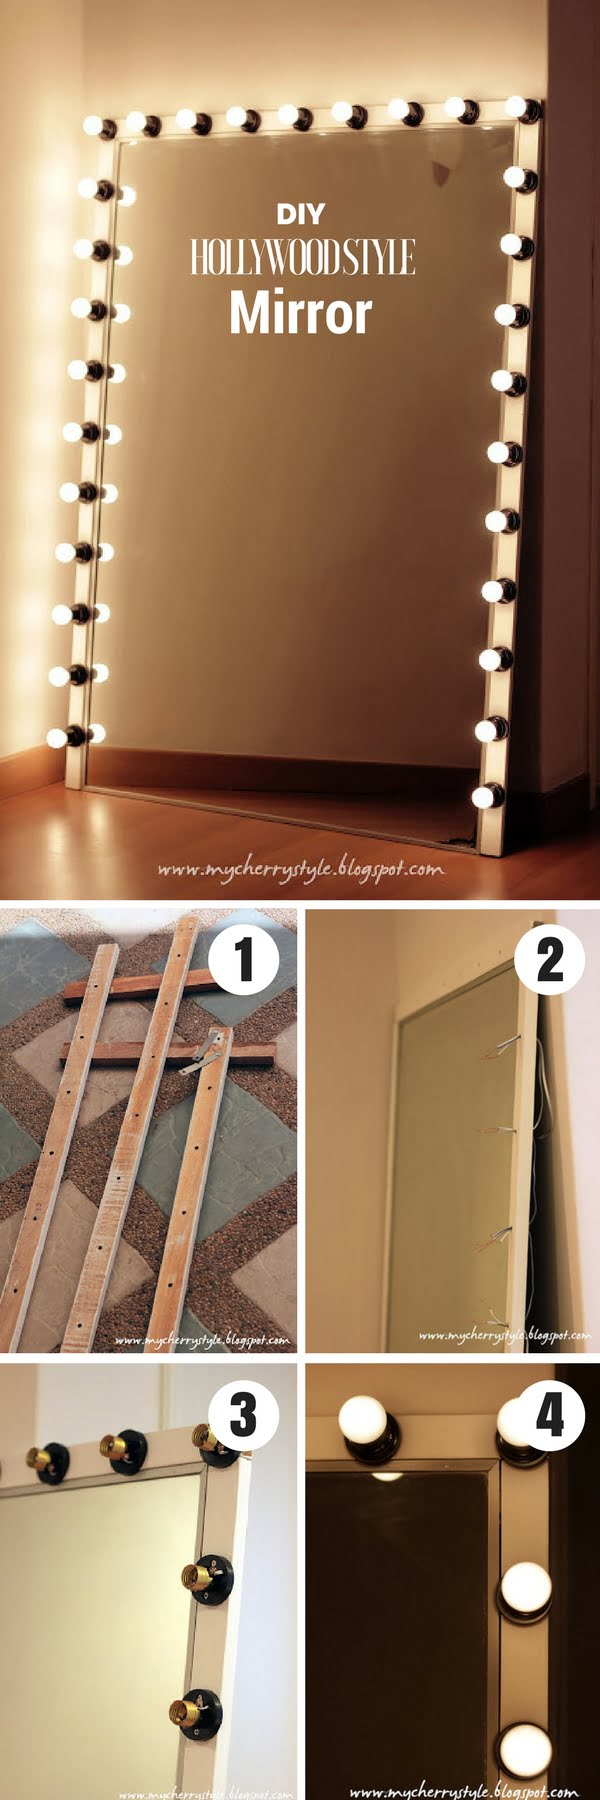 50 Fab DIY Mirror Frames You Can Easily Make Yourself - Check out how to make this DIY Hollywood style mirror with lights @istandardesign